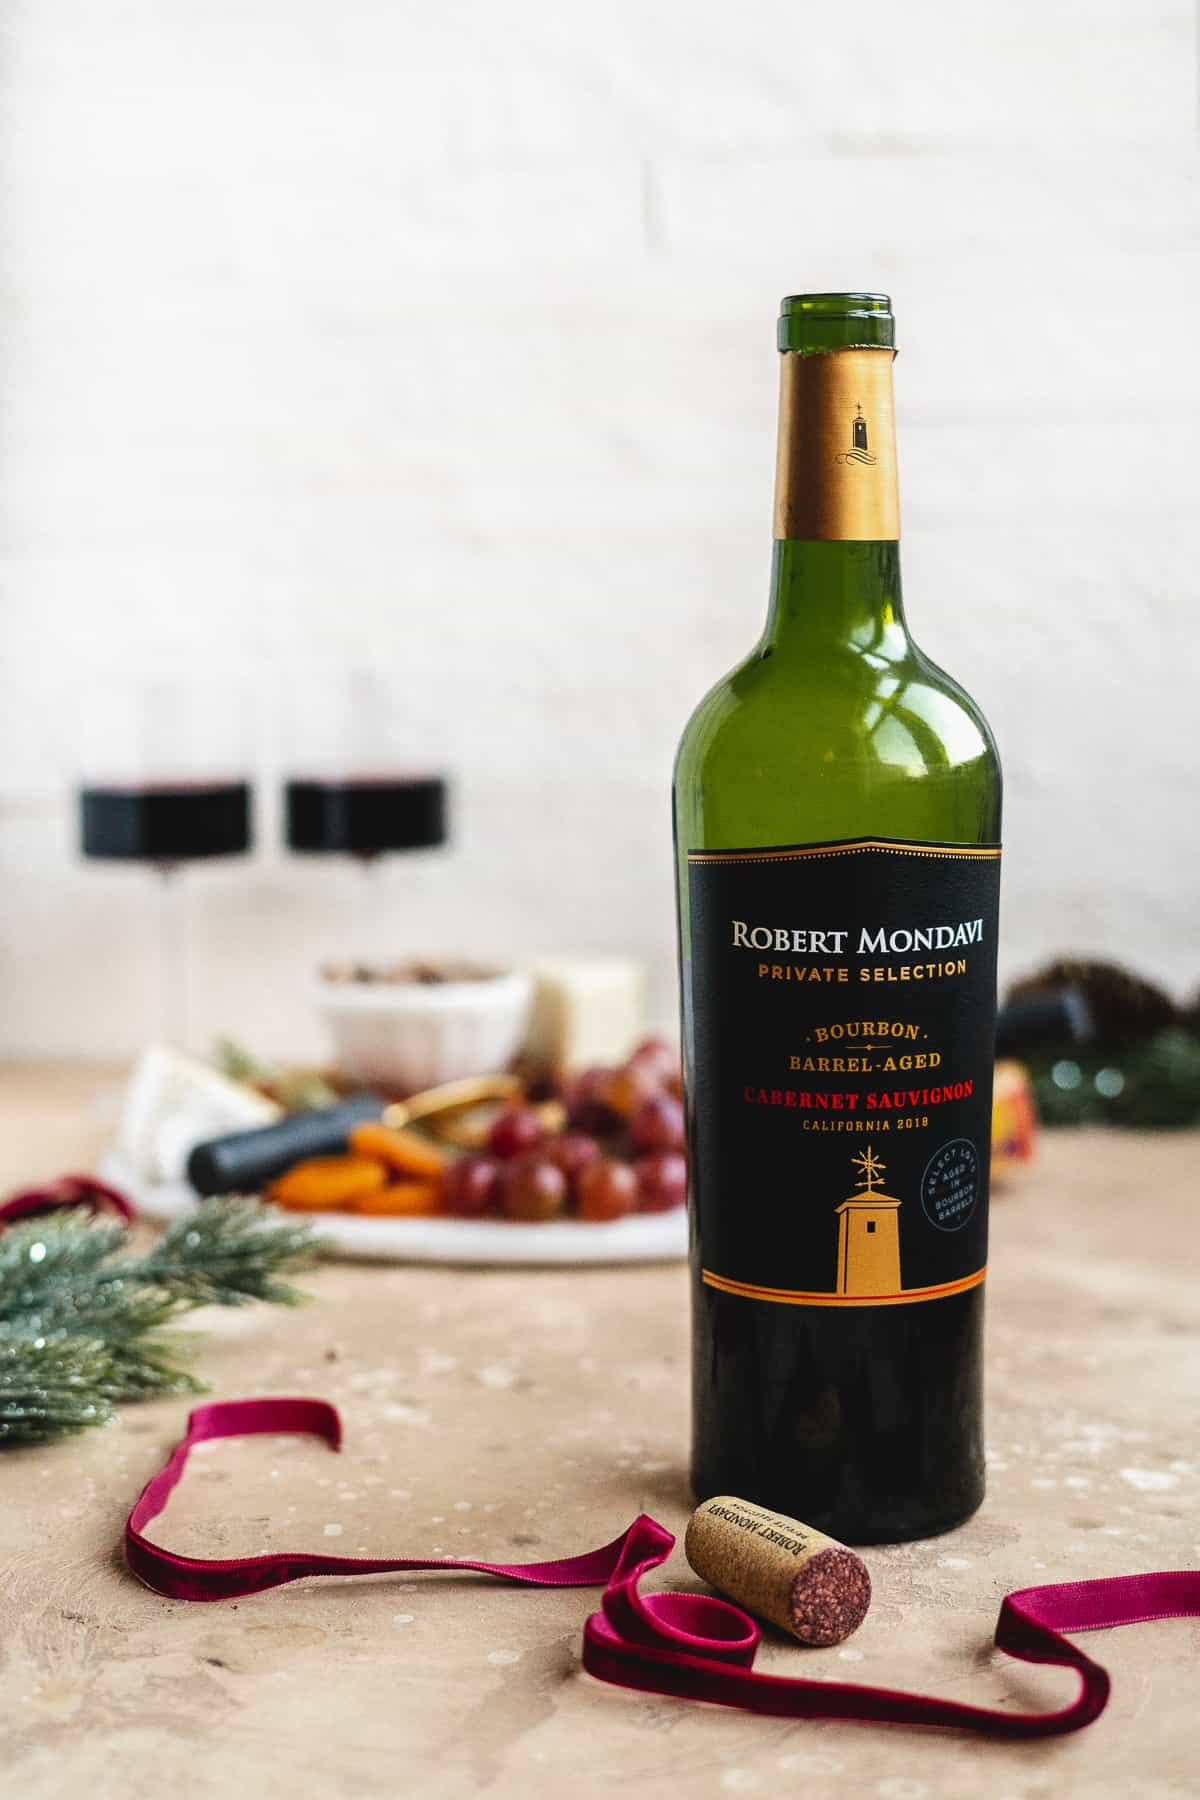 Product photo of Robert Mondavi Cabernet Sauvignon wine bottle with completed charcuterie board in the background.